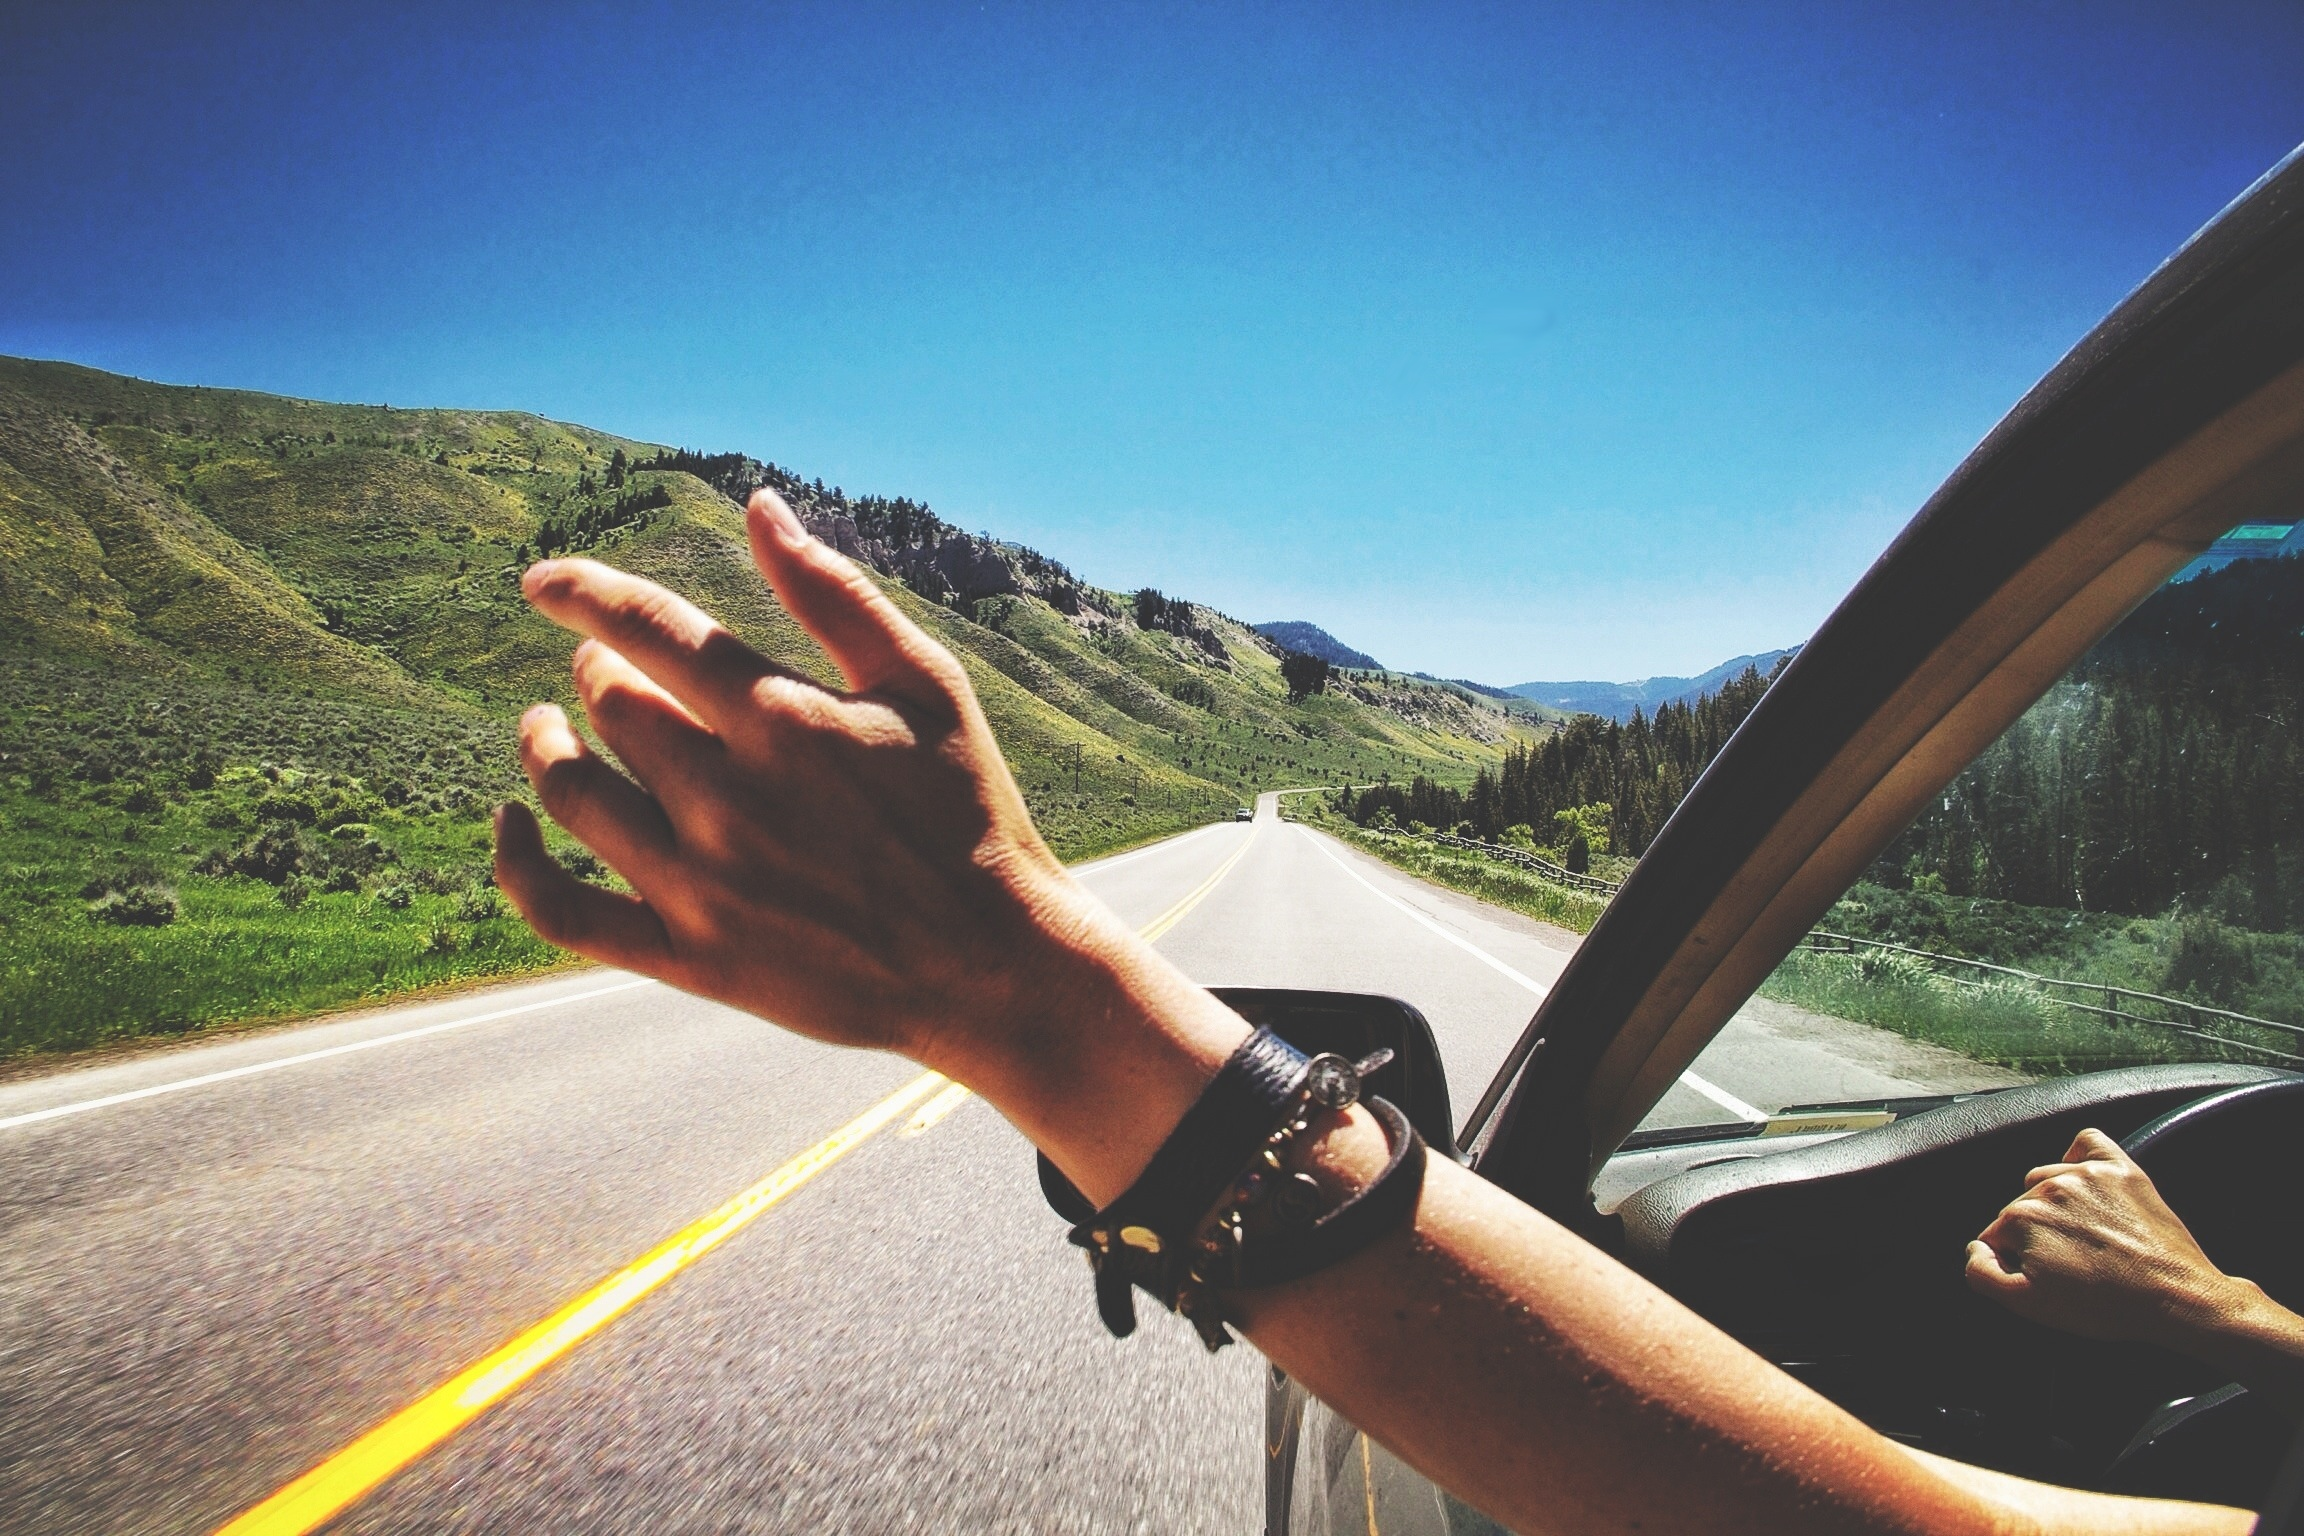 Hand out car window on open road